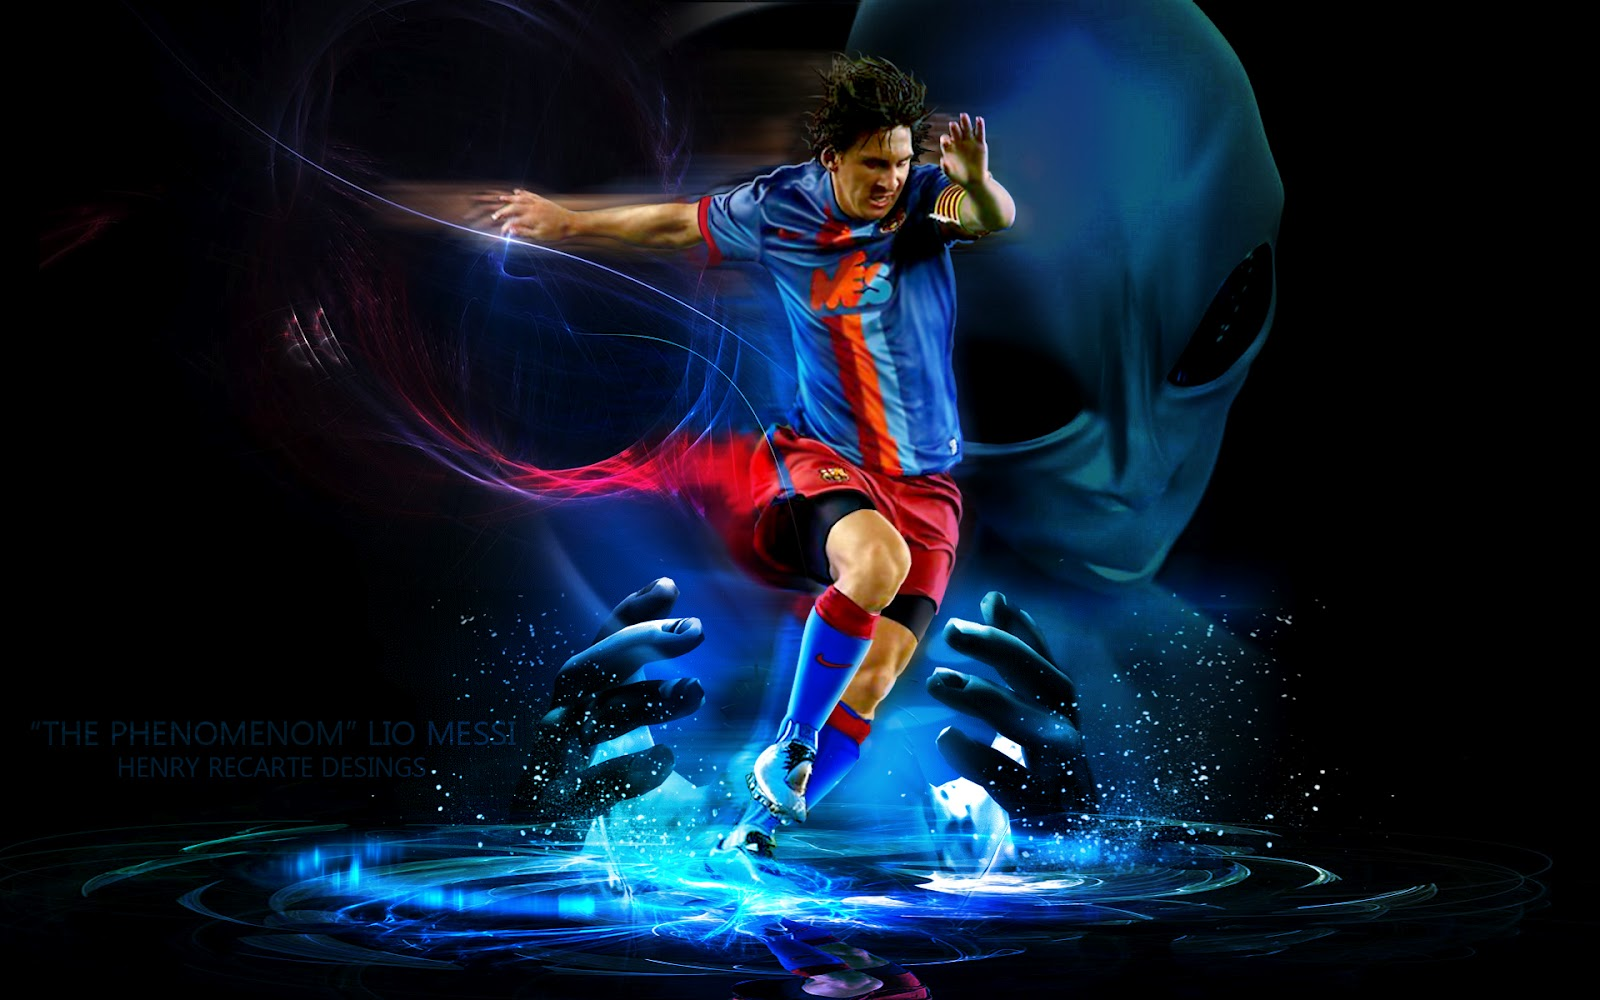 Messi Hd Wallpapers HD Wallpaper High Definition Wallpapers 1600x1000